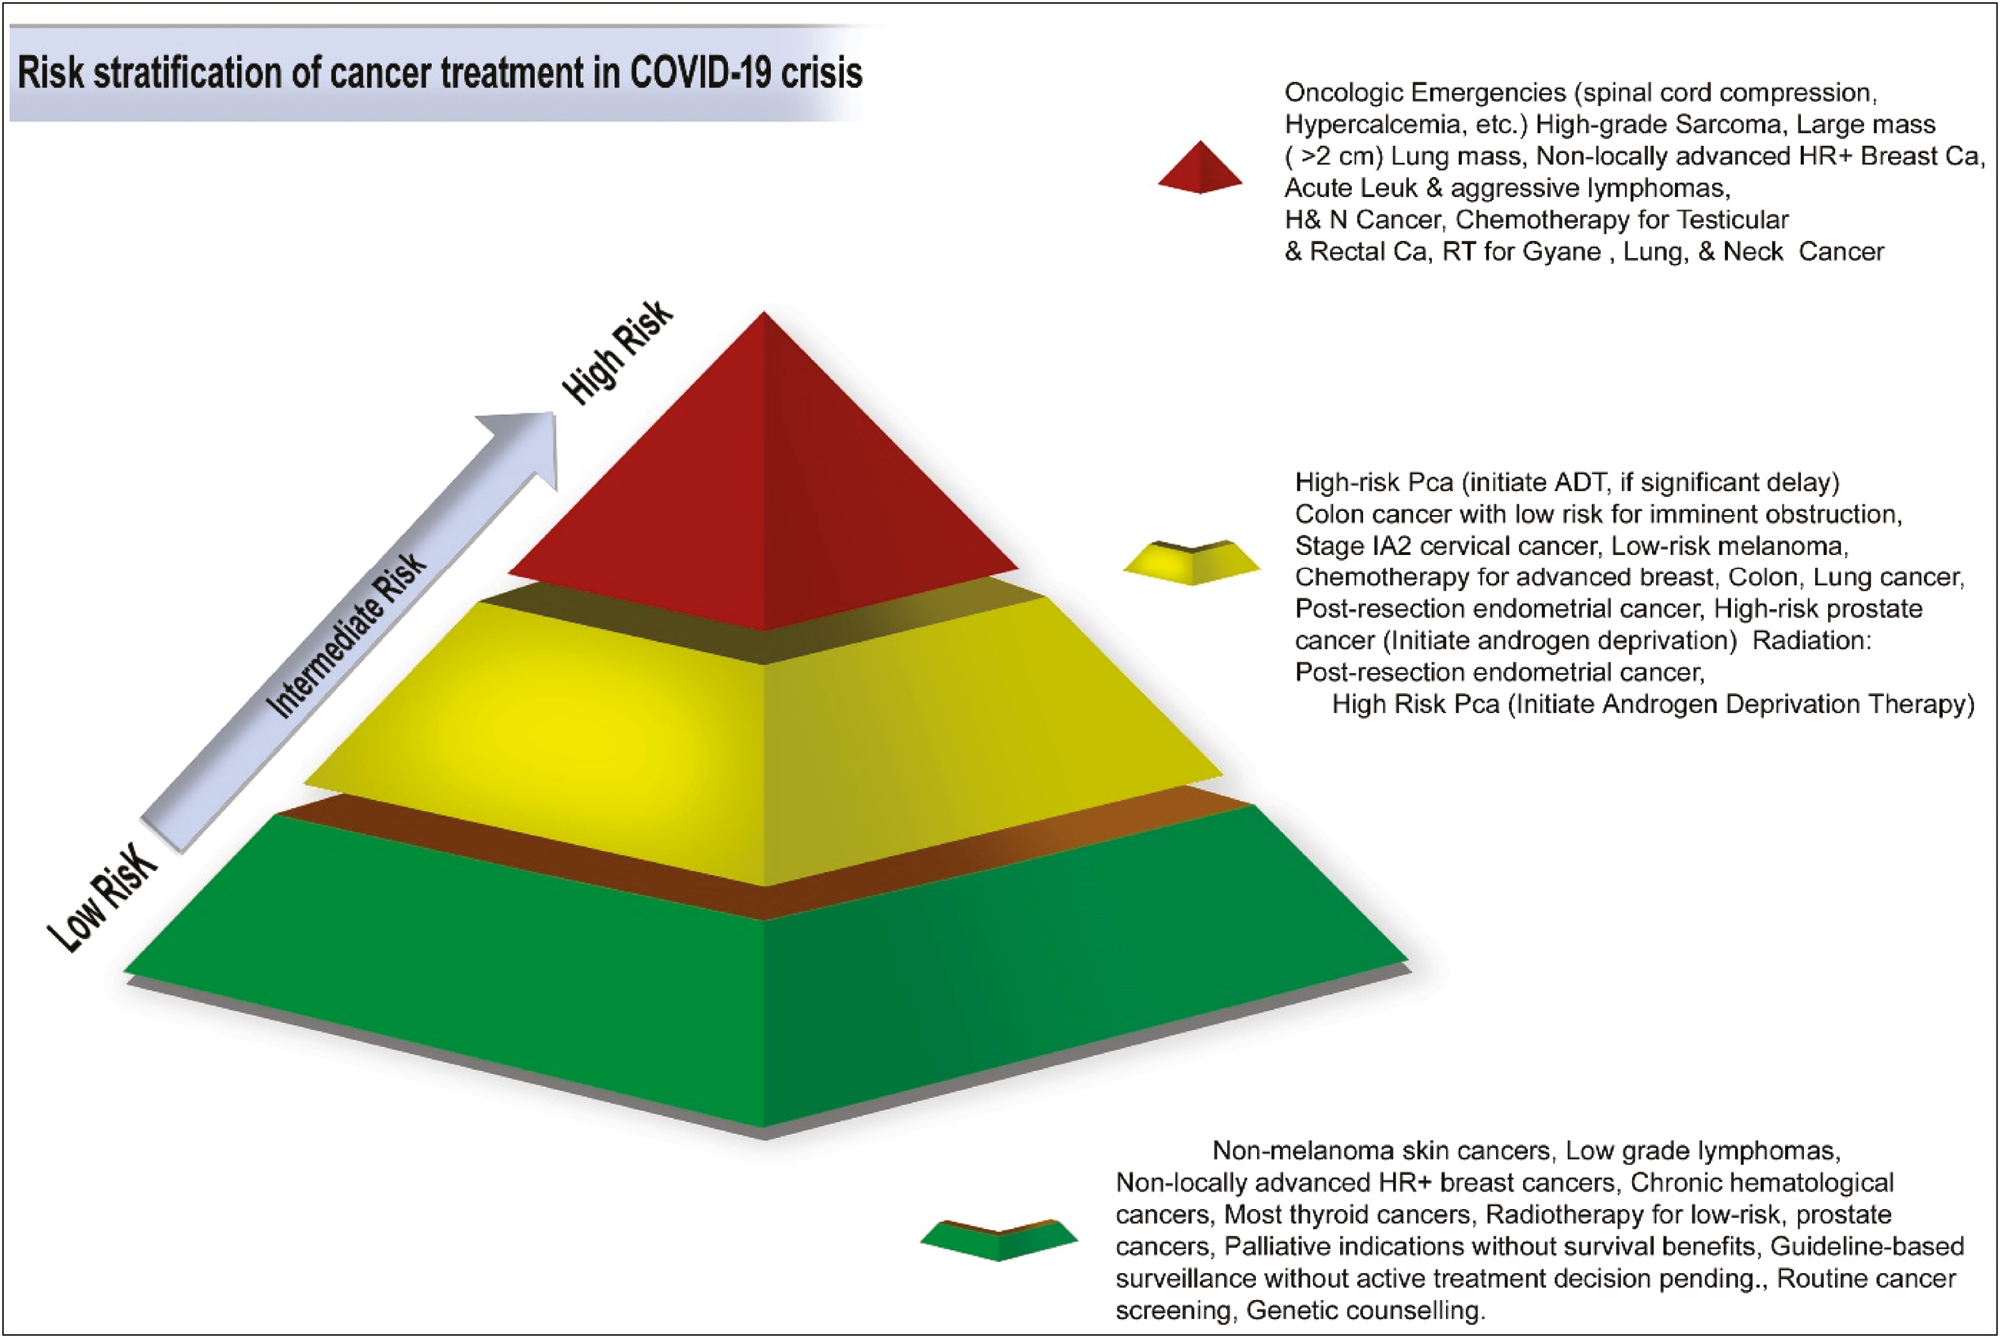 Figure 1: Recommendations in this figure are to be used as a general guideline only. Expert oncologic opinion should be considered to individual patient. COVID-19 = coronavirus disease 2019, Ca = cancer, H&N = head and neck, PCa = prostate cancer, RT = radiotherapy, Leuk = leukemia, HR+ = hormone receptor-positive, ADT = androgen deprivation therapy